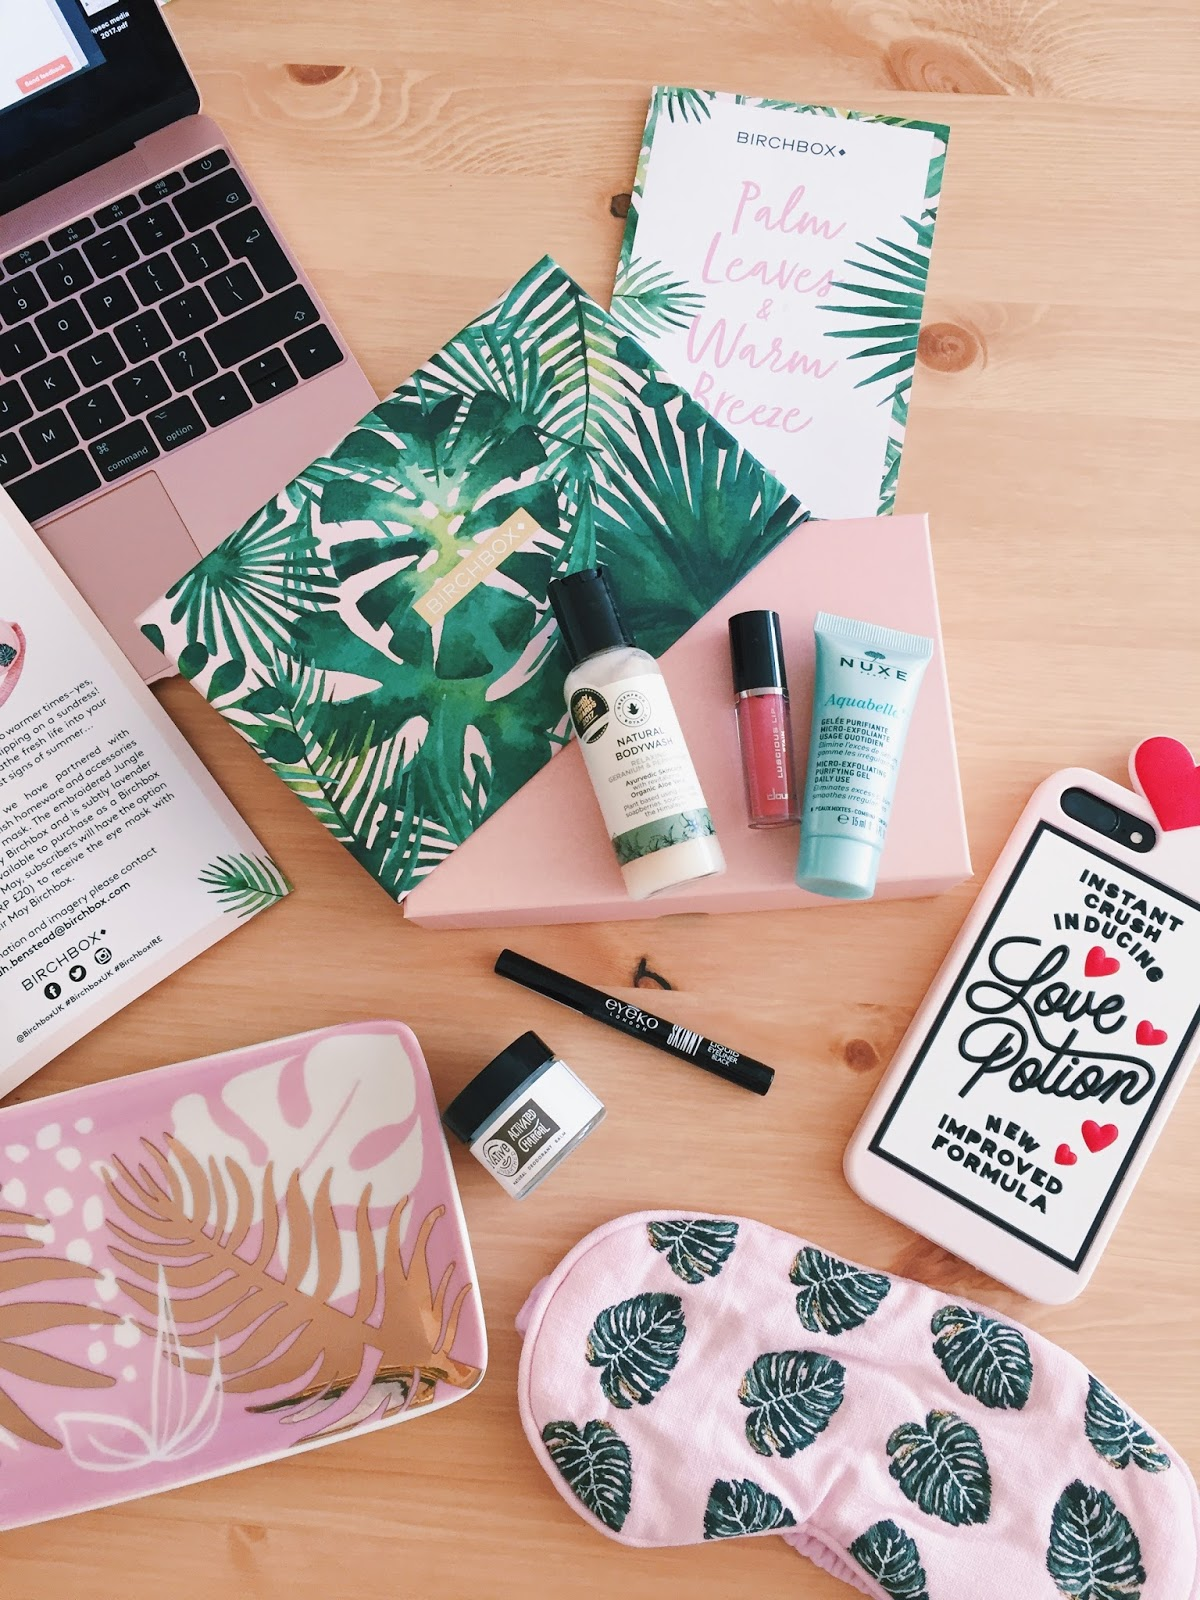 Birchbox May 2018: Palm Leaves and Warm Breeze